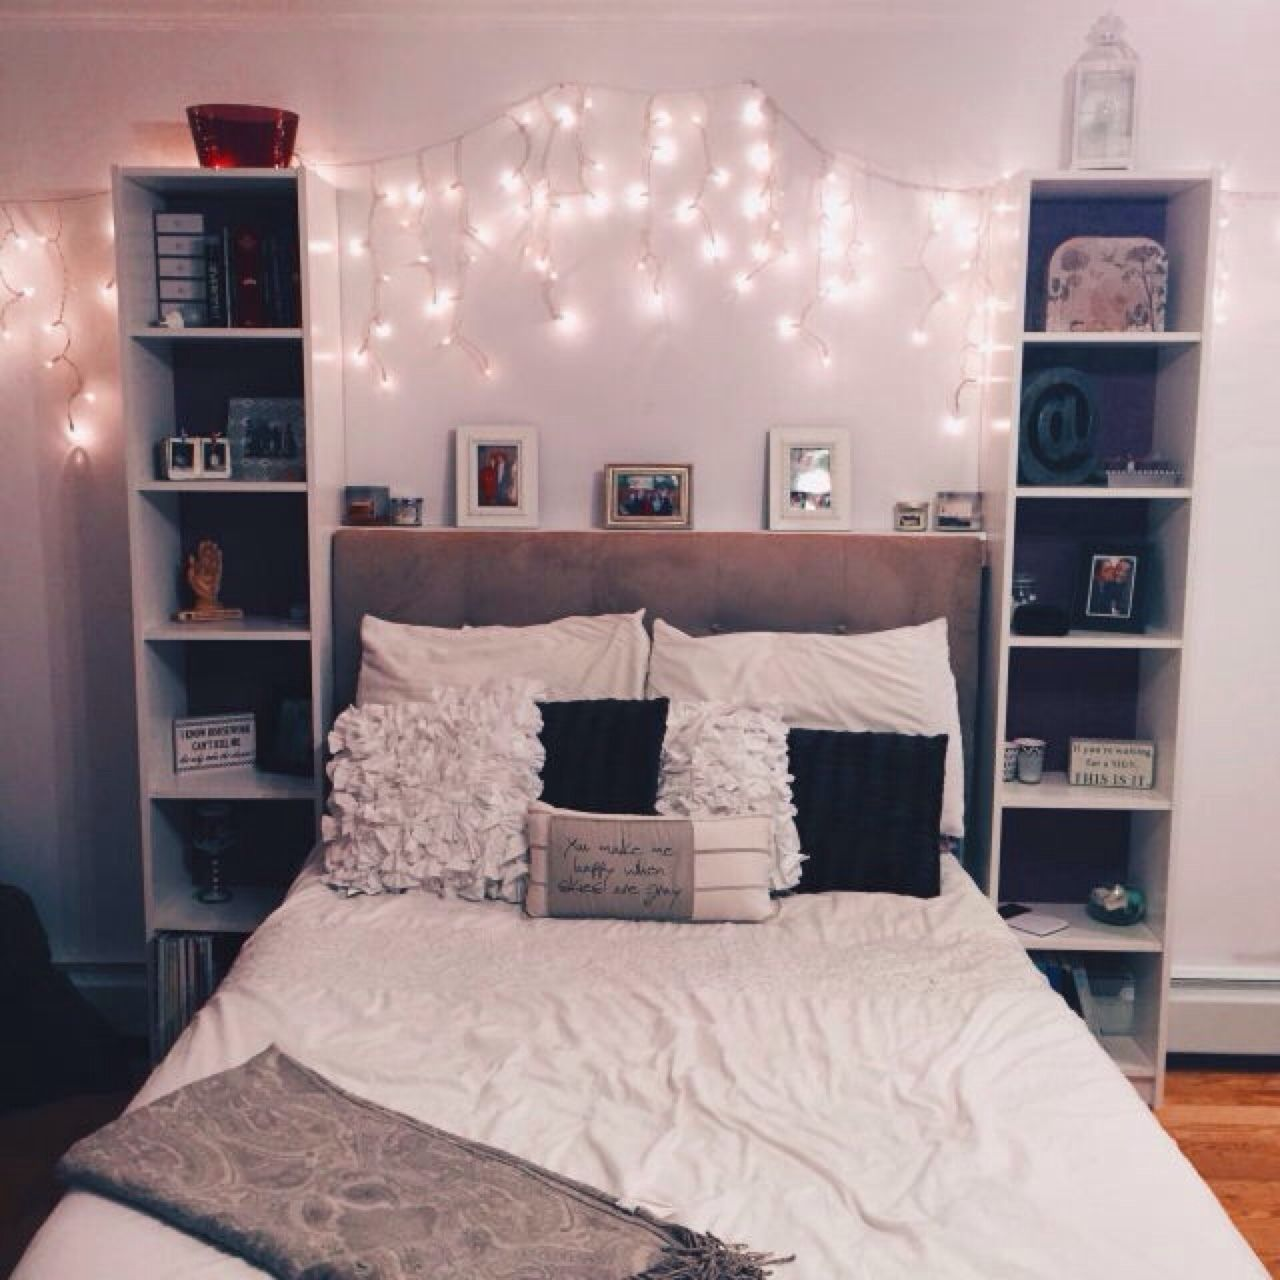 Pin by Hendro birowo on modern design low budget in 2019  Apartment bedroom decor Room decor